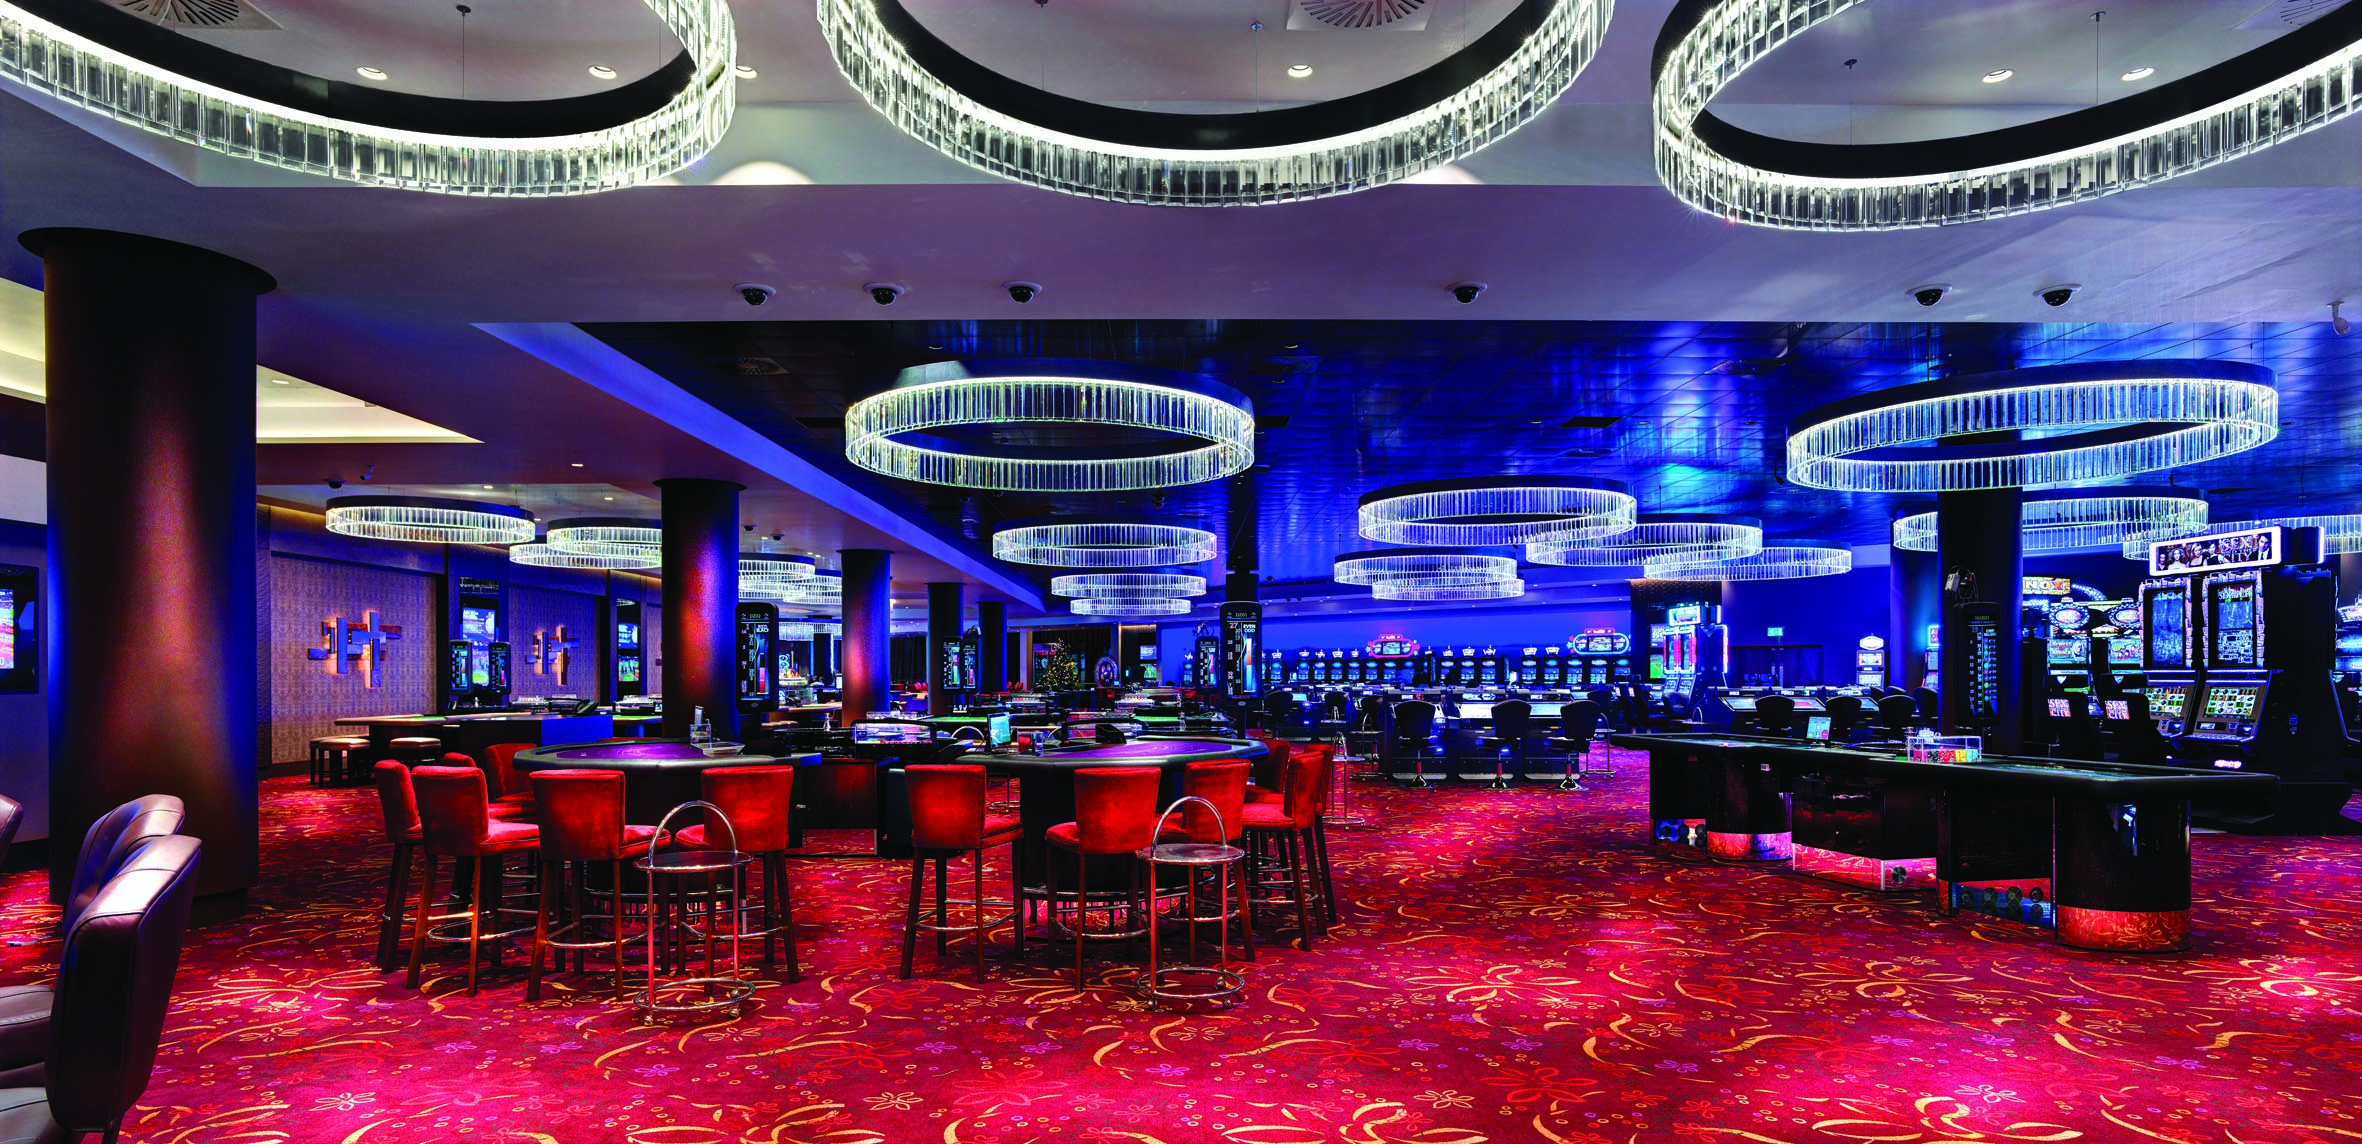 Aspers casino westfield poker courses casino a credit